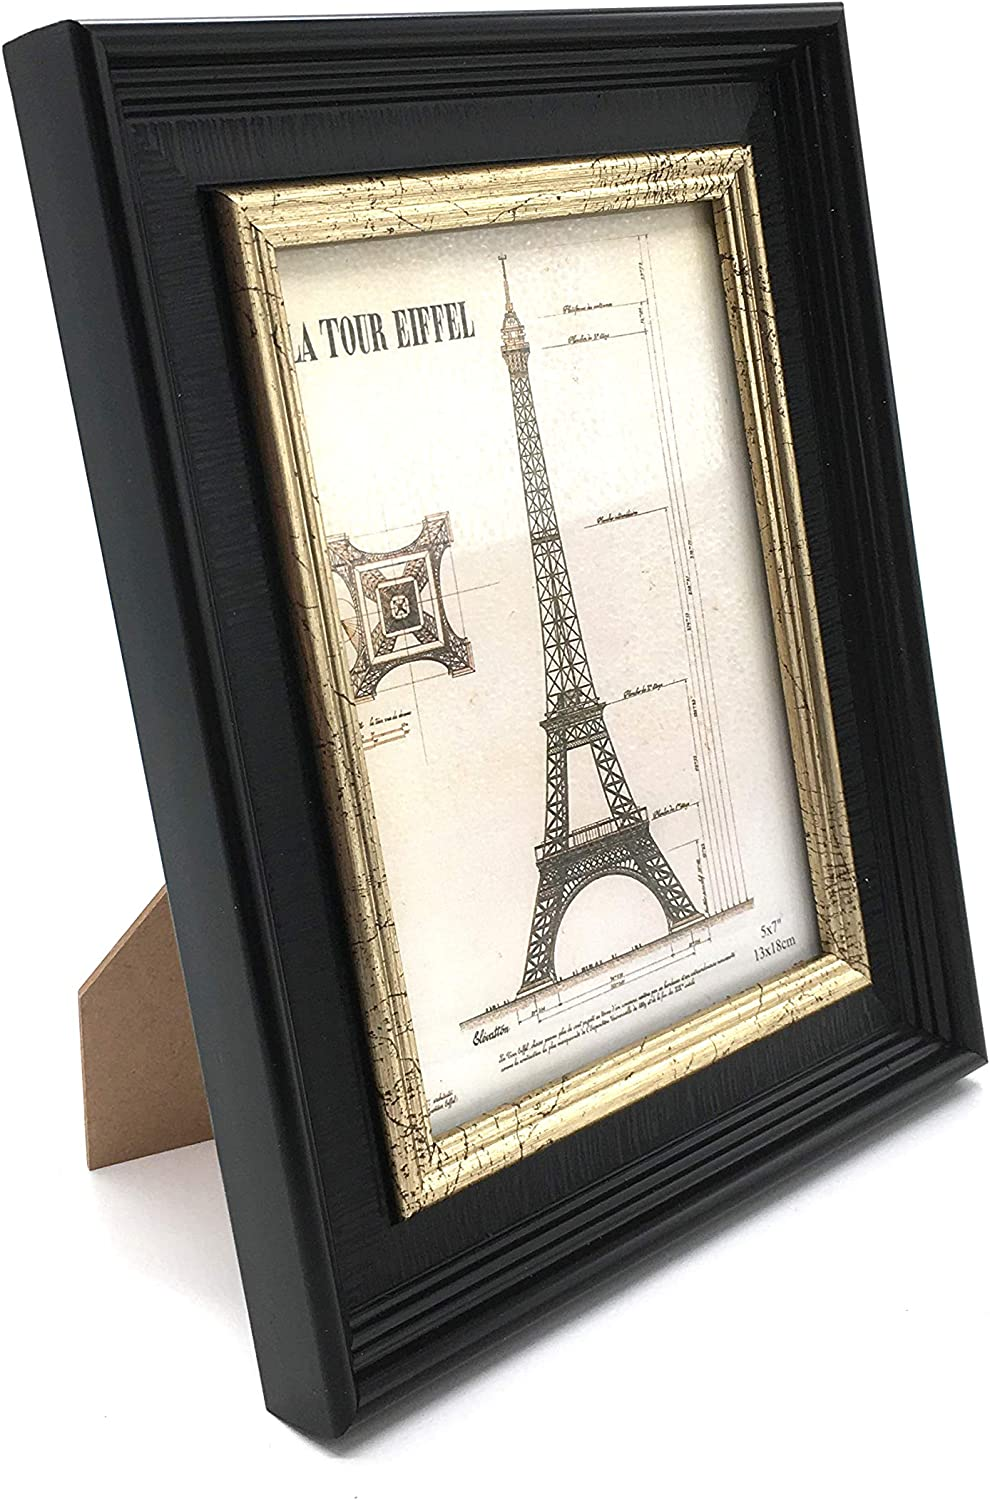 allgala 3-Pack Wood Imitation Desktop Photo Frames with Glass Face - 5X7 Inch - Black Gold Trim Style - HD61055